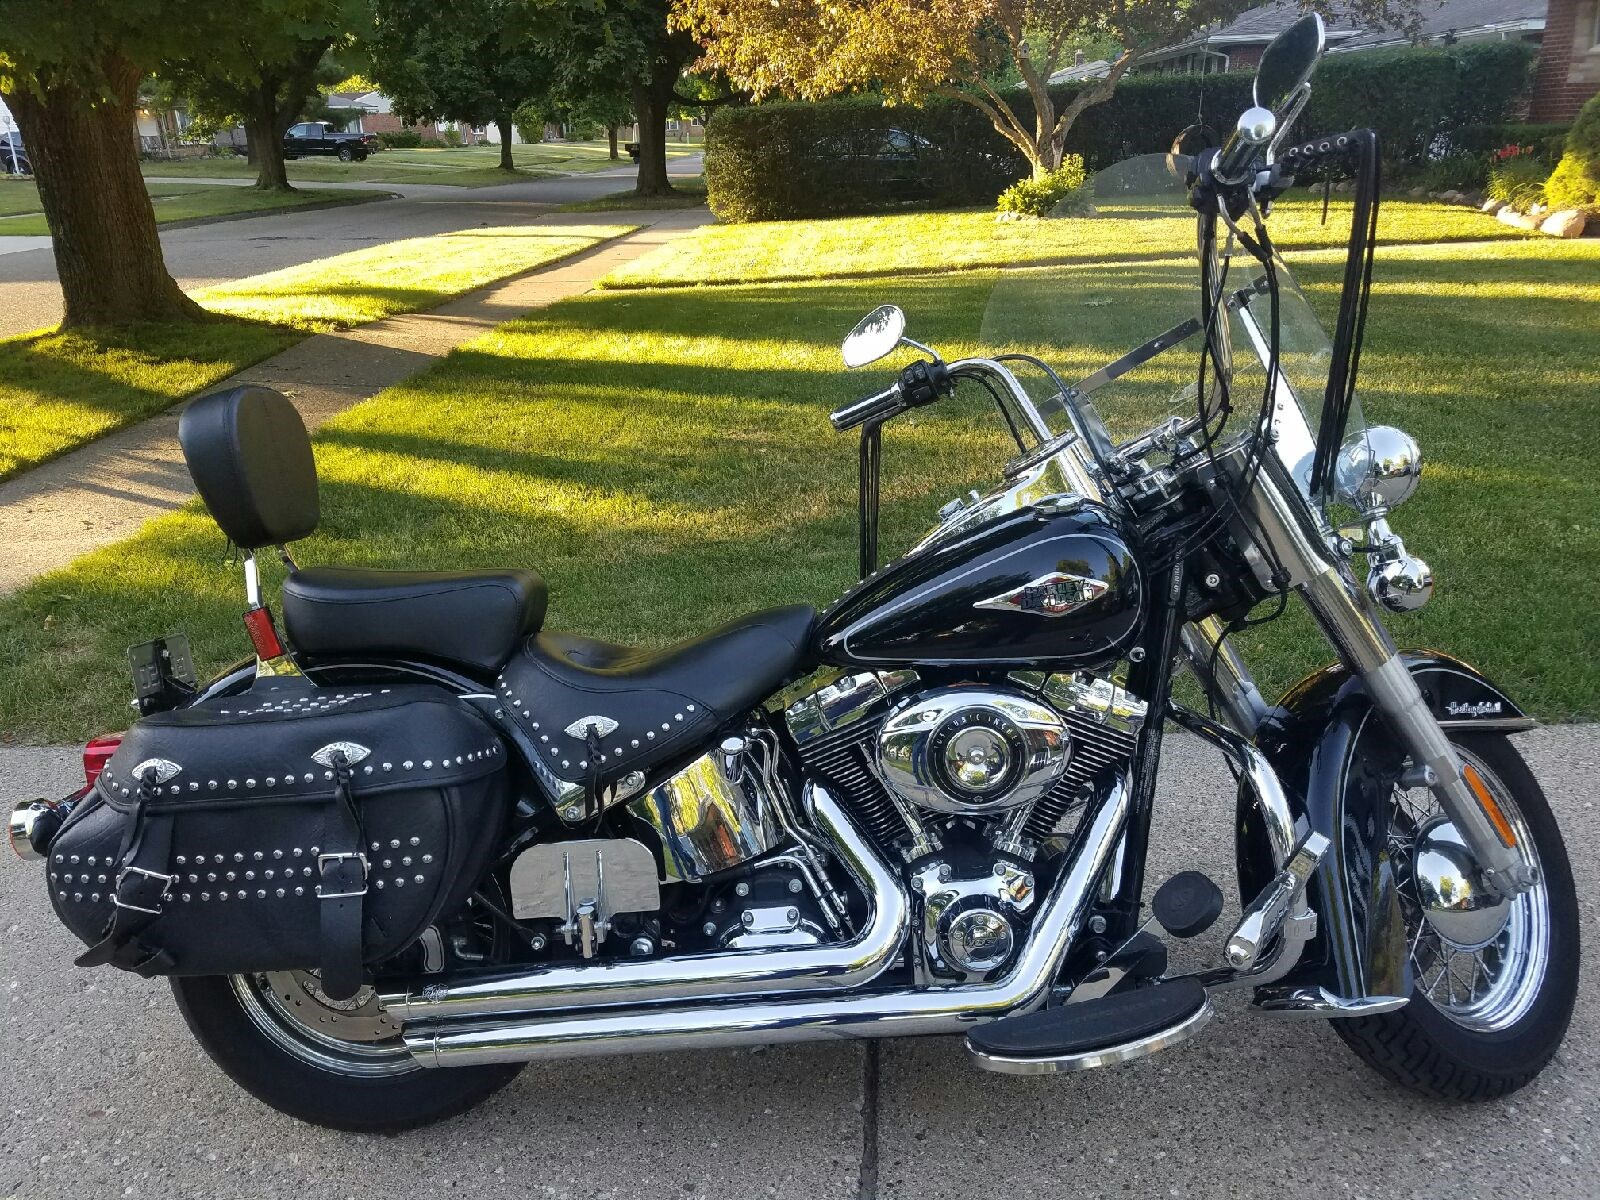 Ford Dealer In Evansville Wi >> 2013 Harley-Davidson® FLSTC Heritage Softail® Classic (Black/chrome), Waterford , Michigan ...